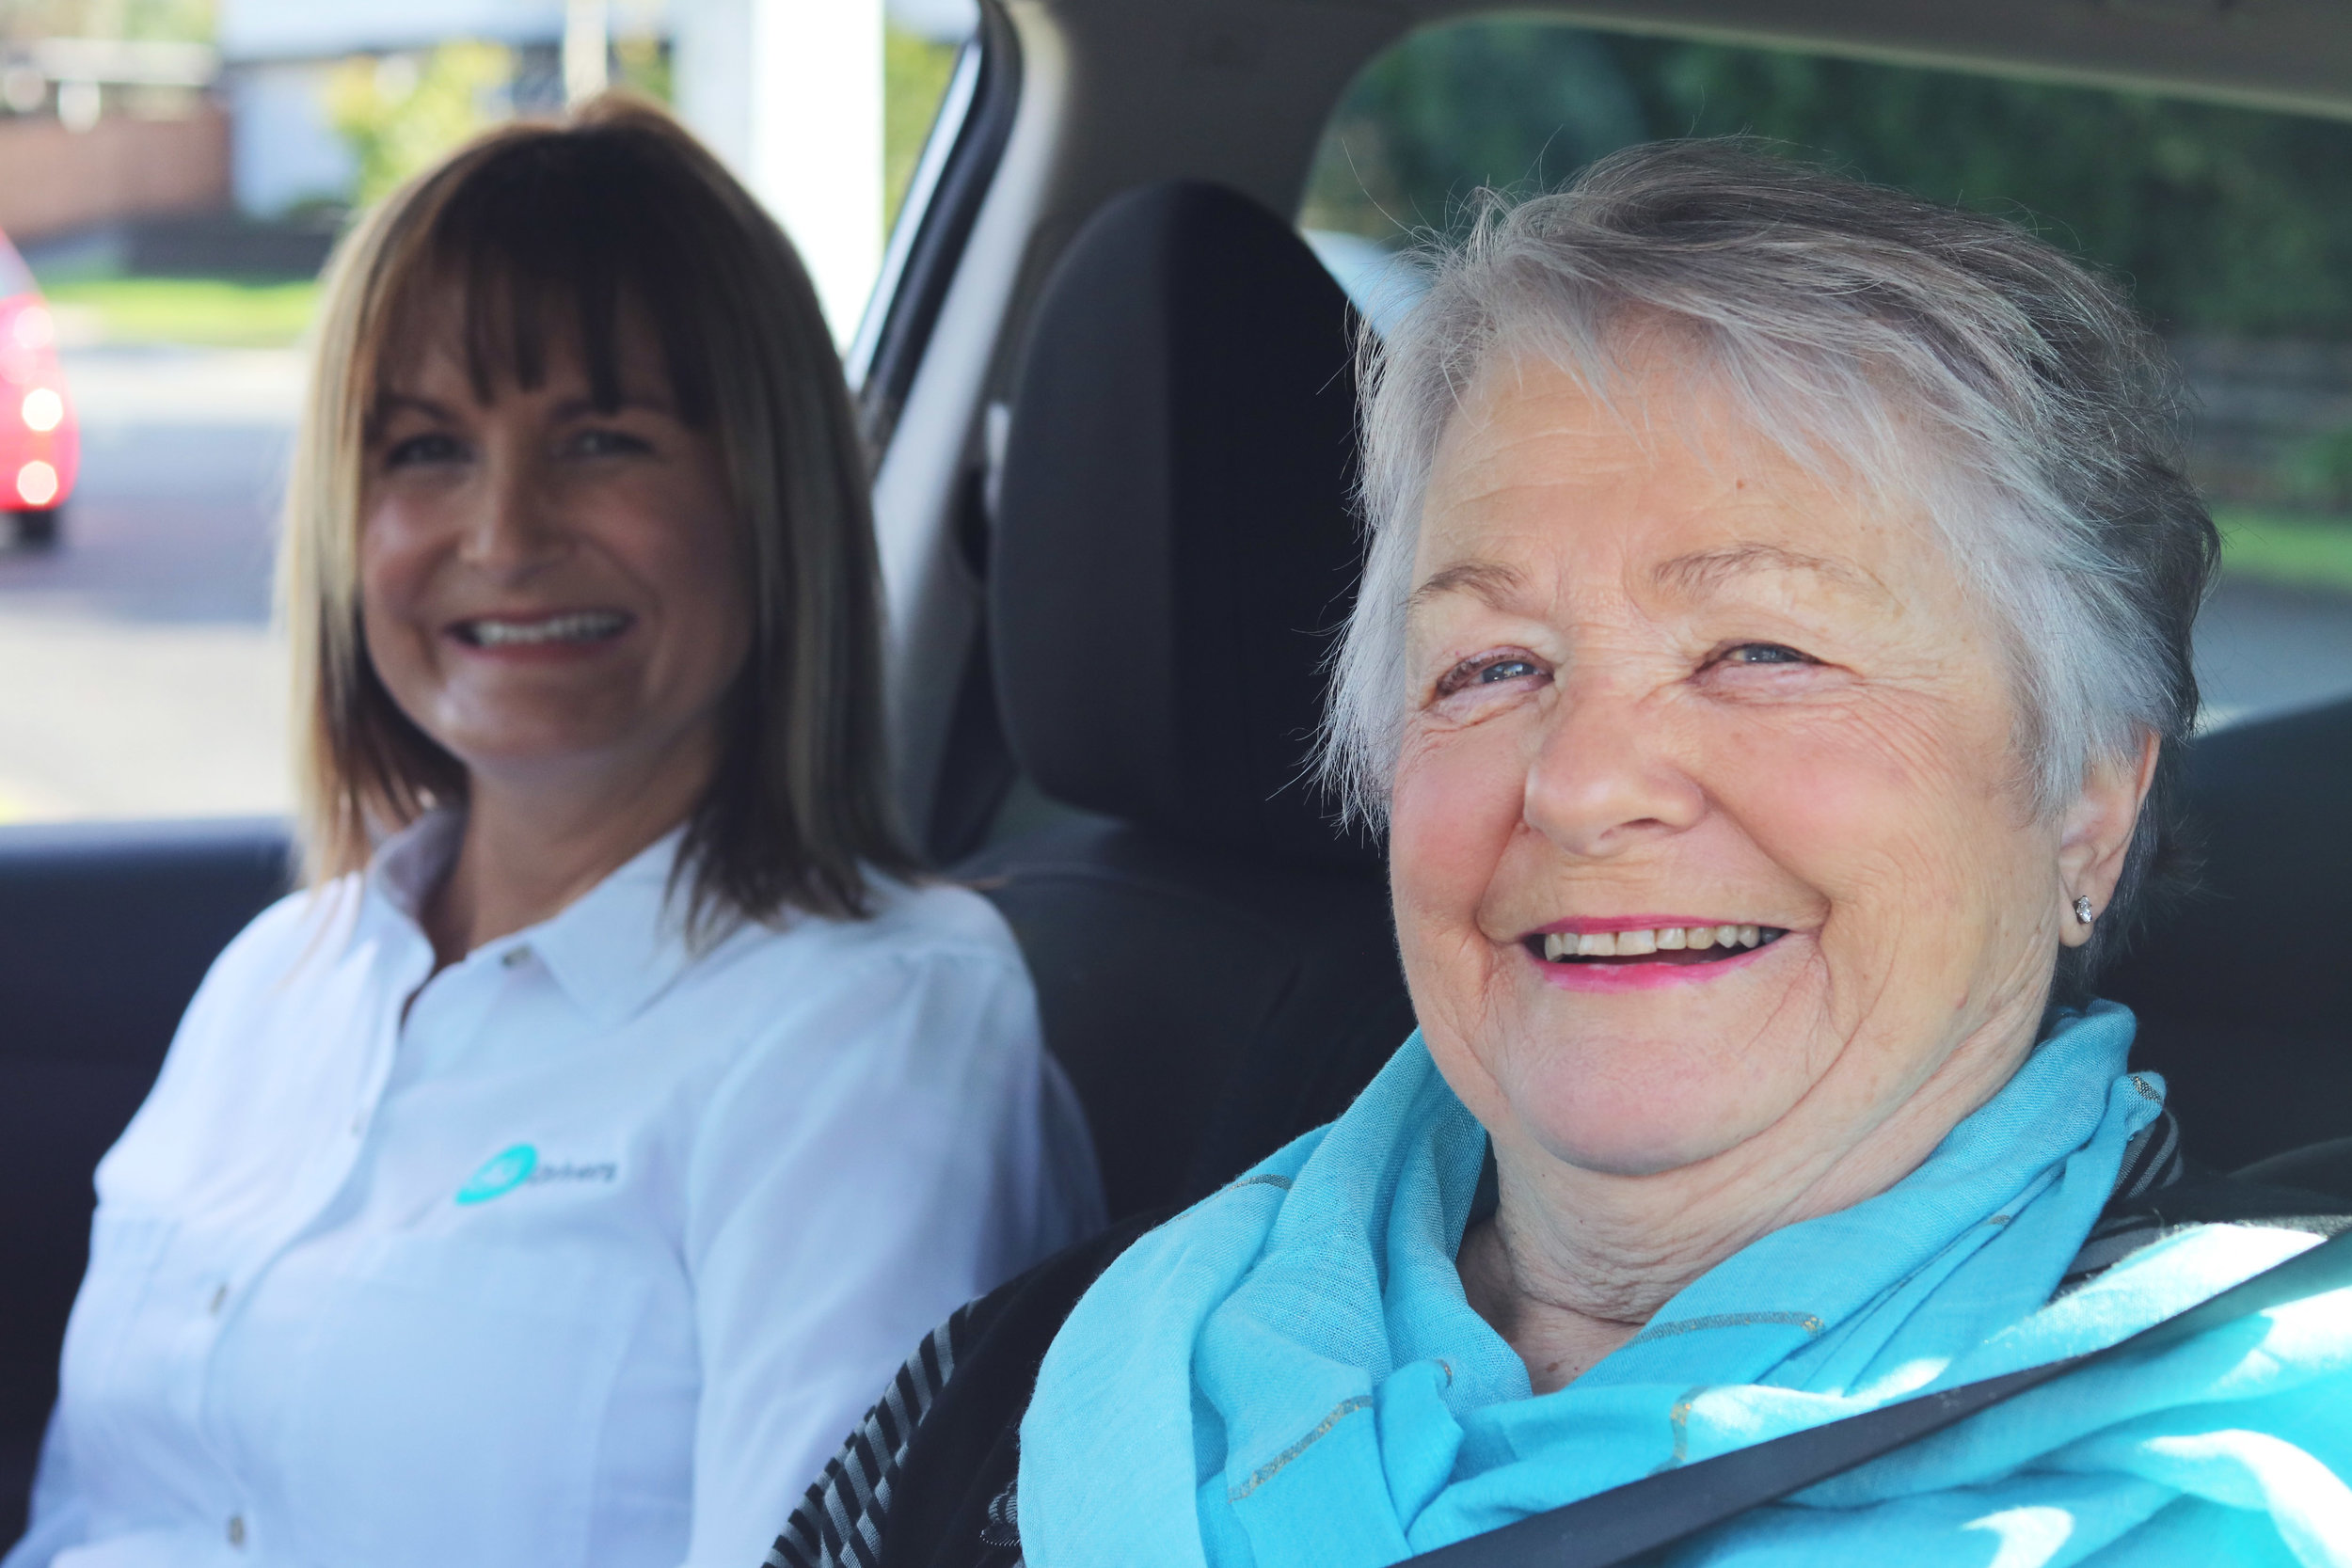 """Testimonial - """"I have a jolly old time with Nicola every week as she takes me out to get my groceries at the special shop I like which is a bit far away for me to drive myself. A wonderful Companion Driving Service!""""- Colleen Roughton 80 years old"""